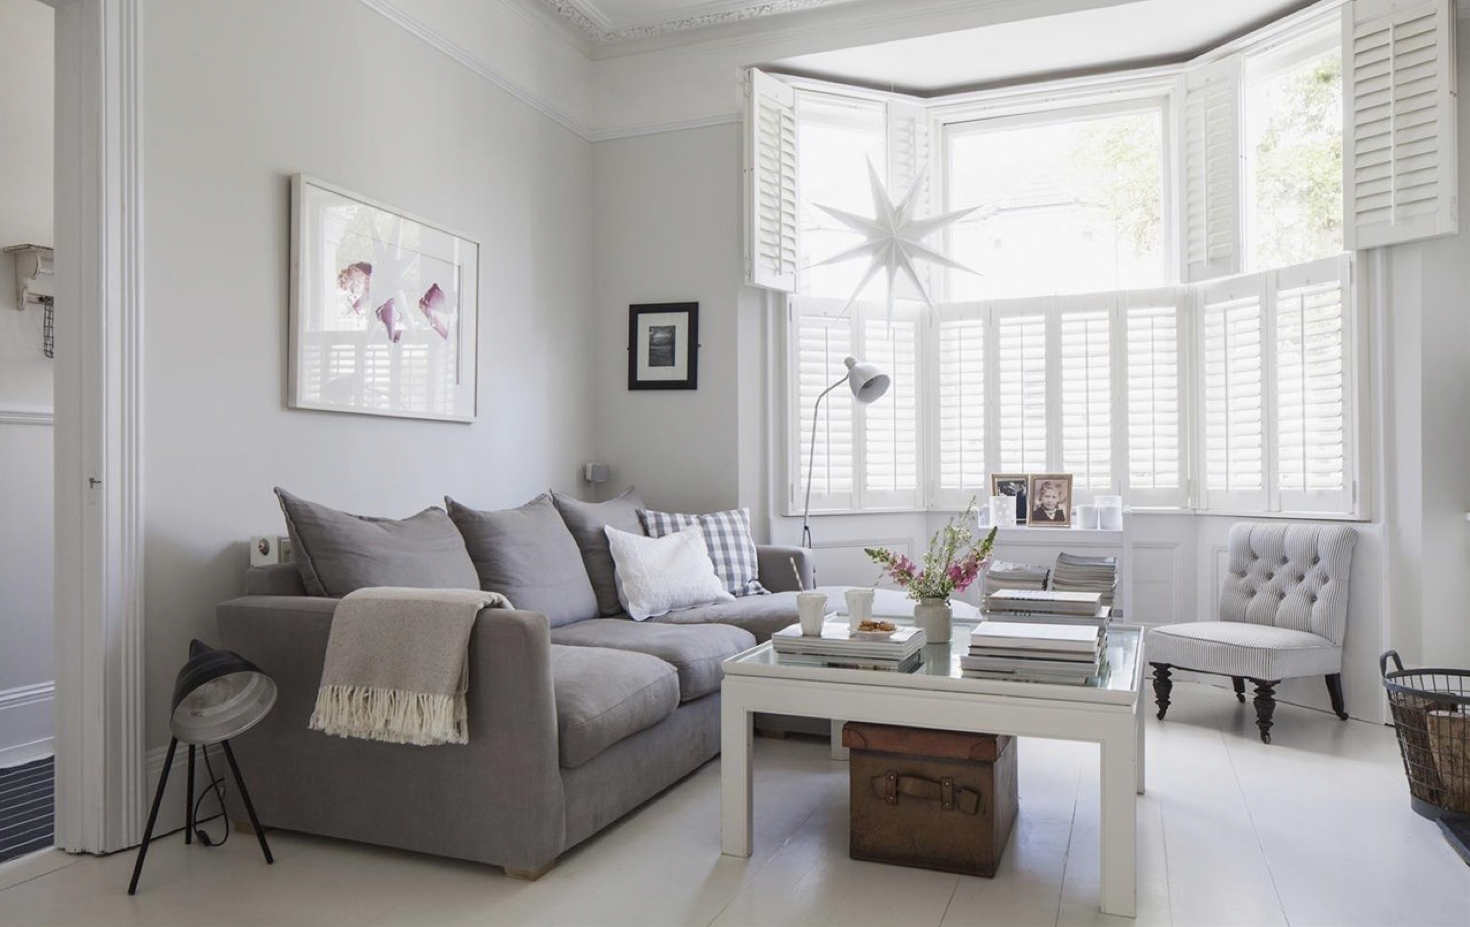 Living Room Grey Sofa Victorian Terrace Sitting Room Plantation Shutters White Wooden